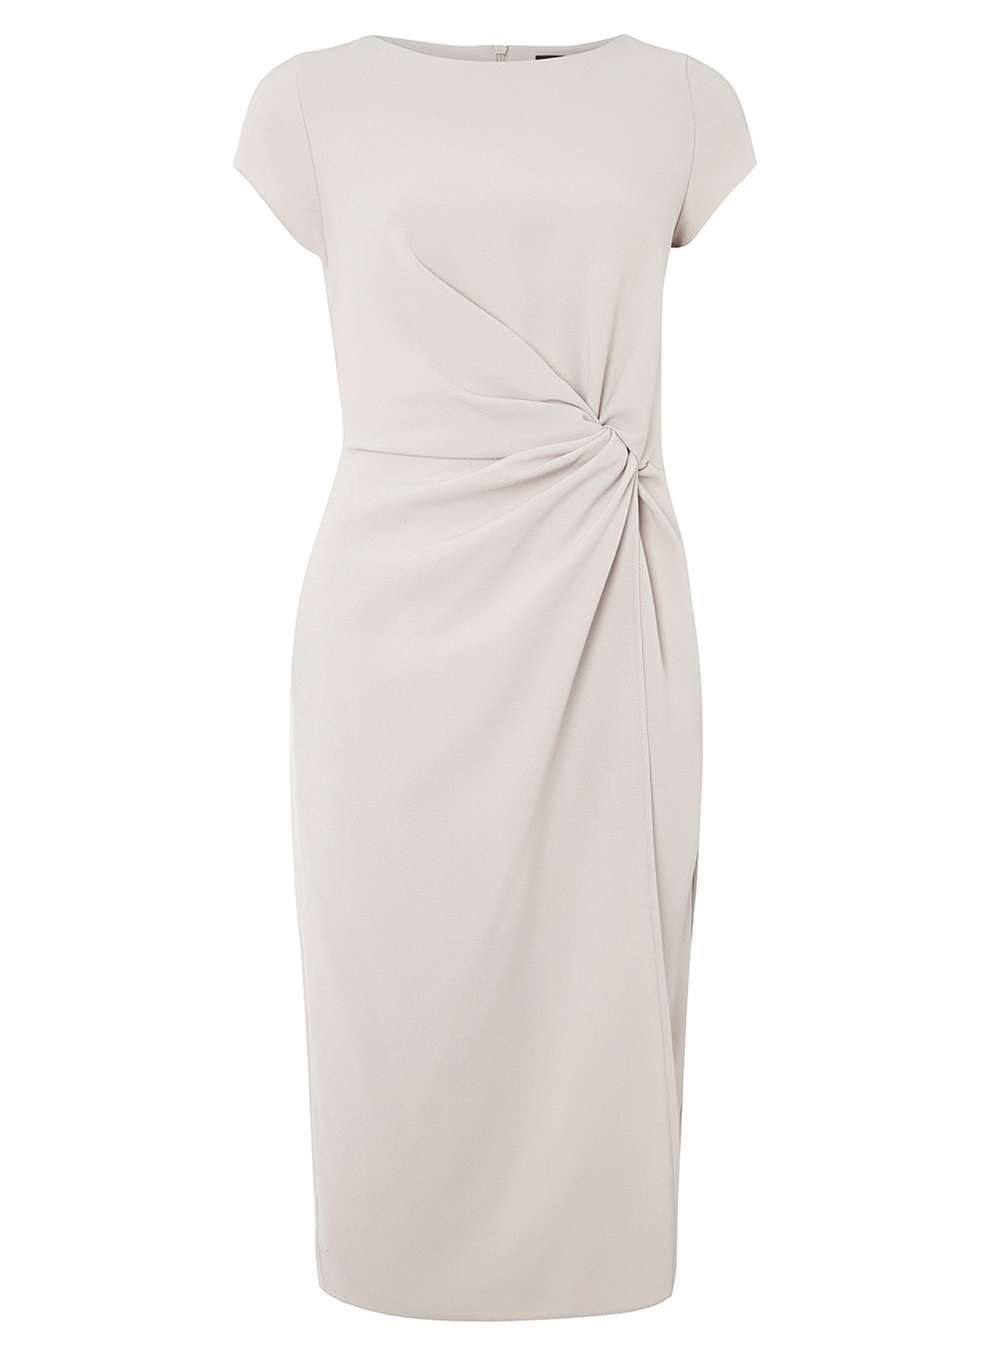 Womens **Luxe Grey Ruched Crepe Dress Grey - style: shift; pattern: plain; waist detail: flattering waist detail; predominant colour: light grey; occasions: evening; length: on the knee; fit: body skimming; fibres: polyester/polyamide - stretch; neckline: crew; sleeve length: short sleeve; sleeve style: standard; pattern type: fabric; texture group: jersey - stretchy/drapey; season: a/w 2016; wardrobe: event